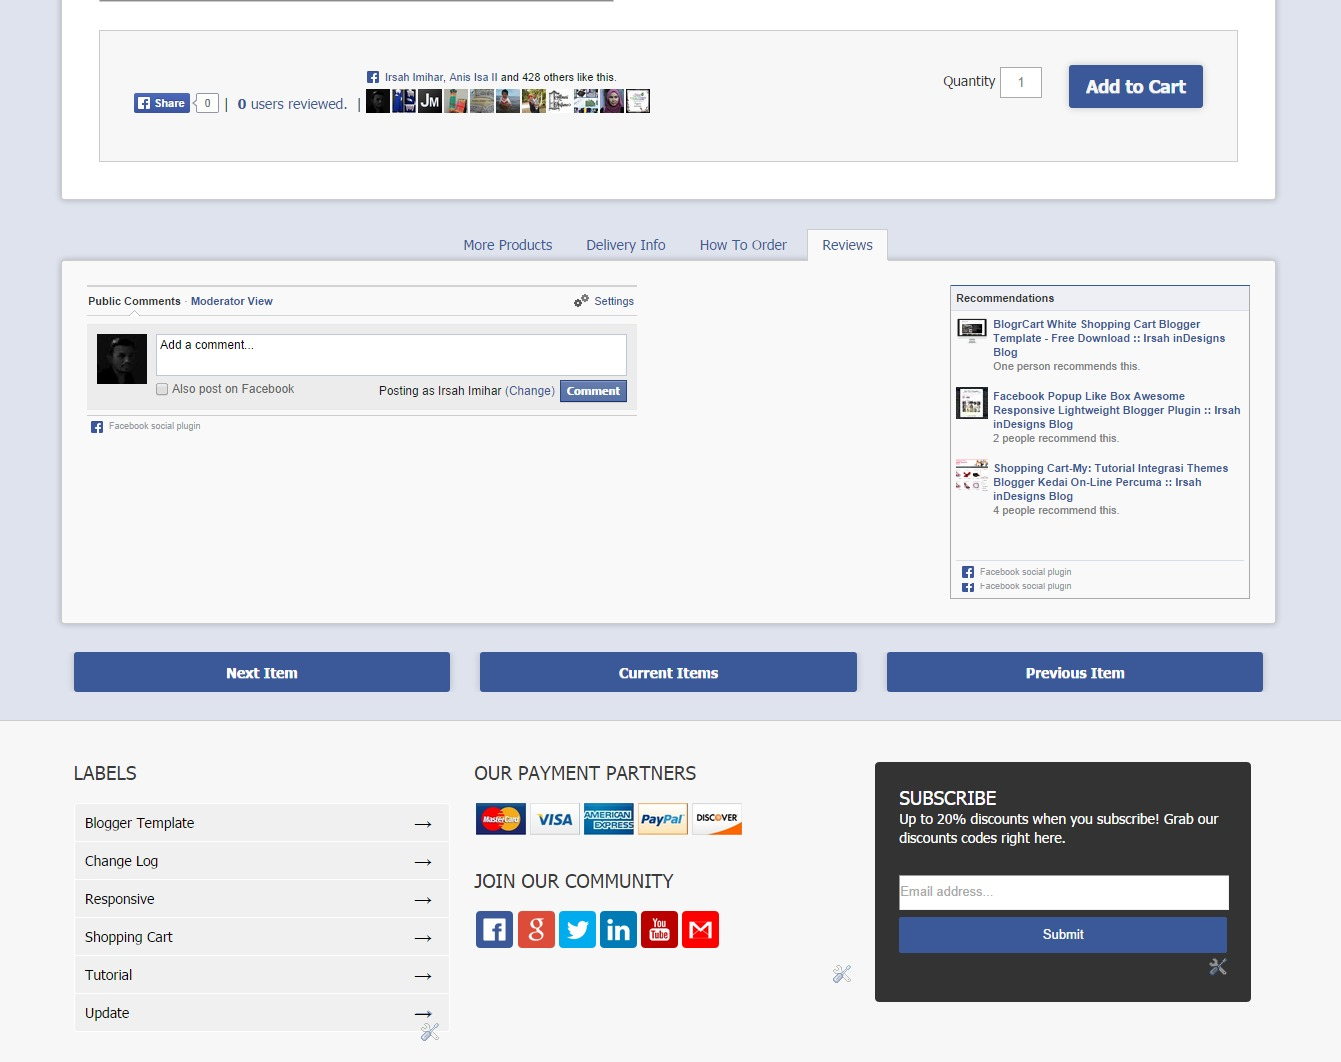 Facebook Comments & Plugins Comes Pre-Installed With Template